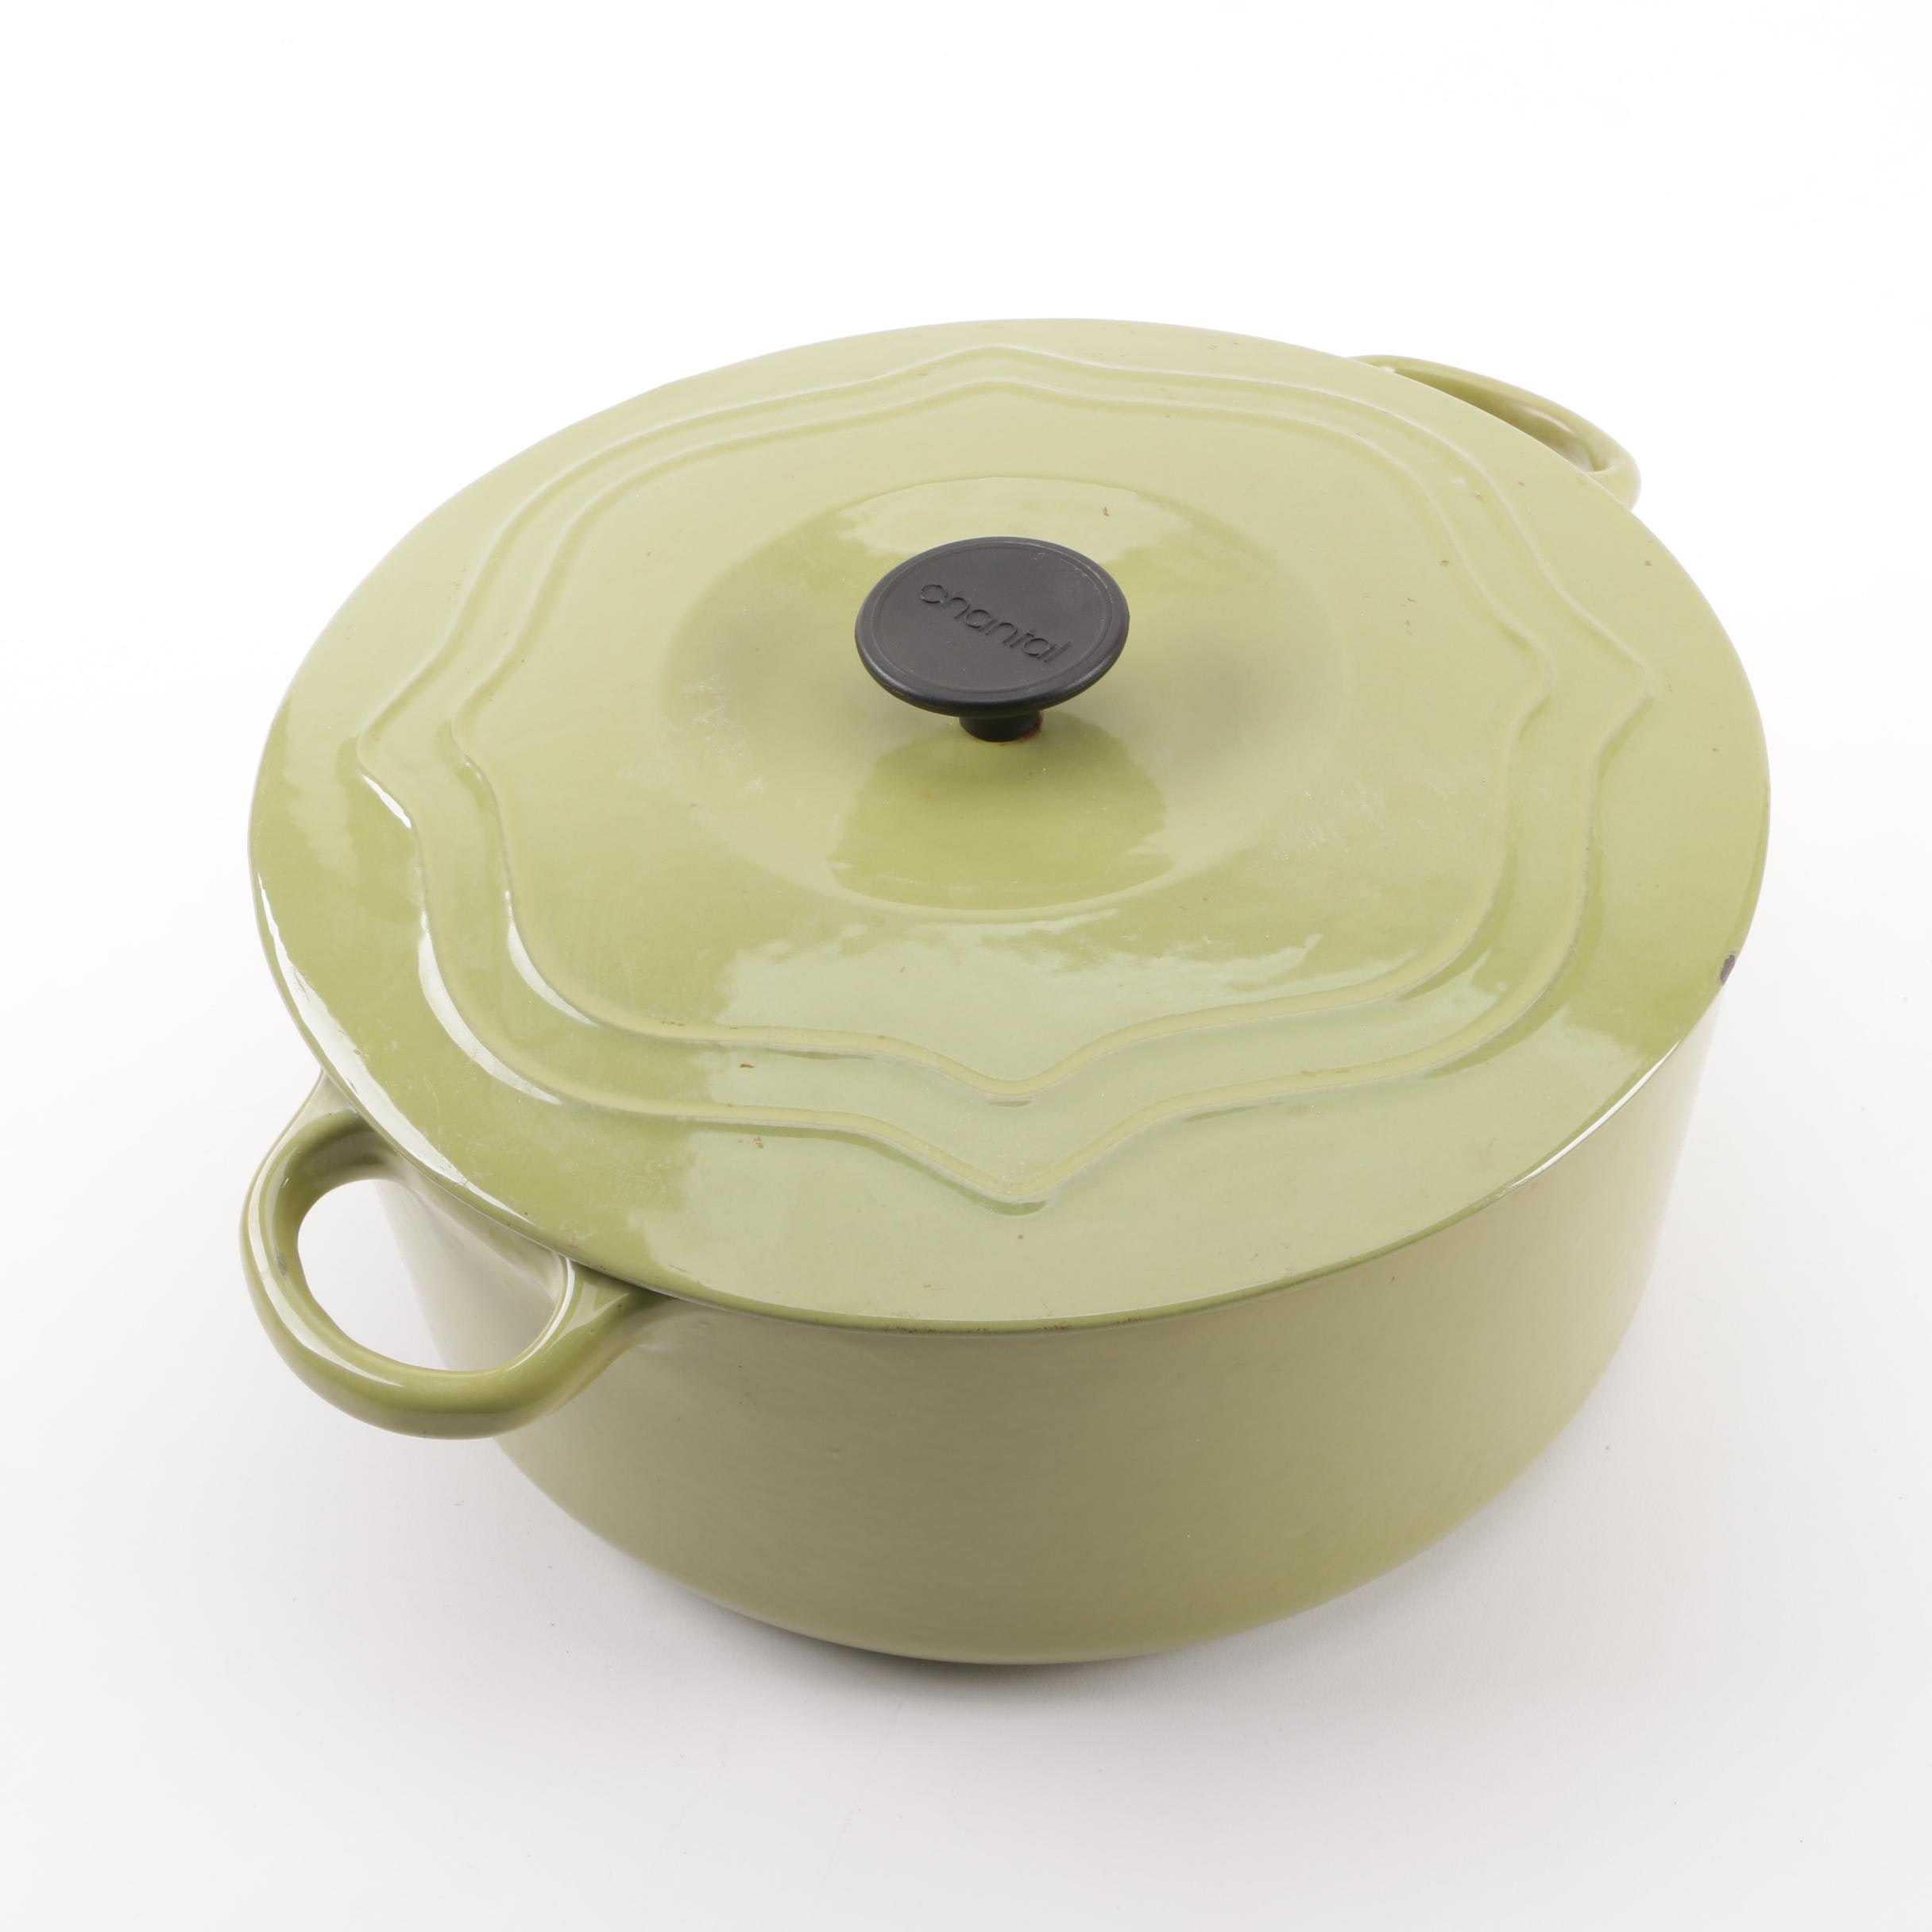 Chantal 8-Quart Enameled Cast Iron Dutch Oven